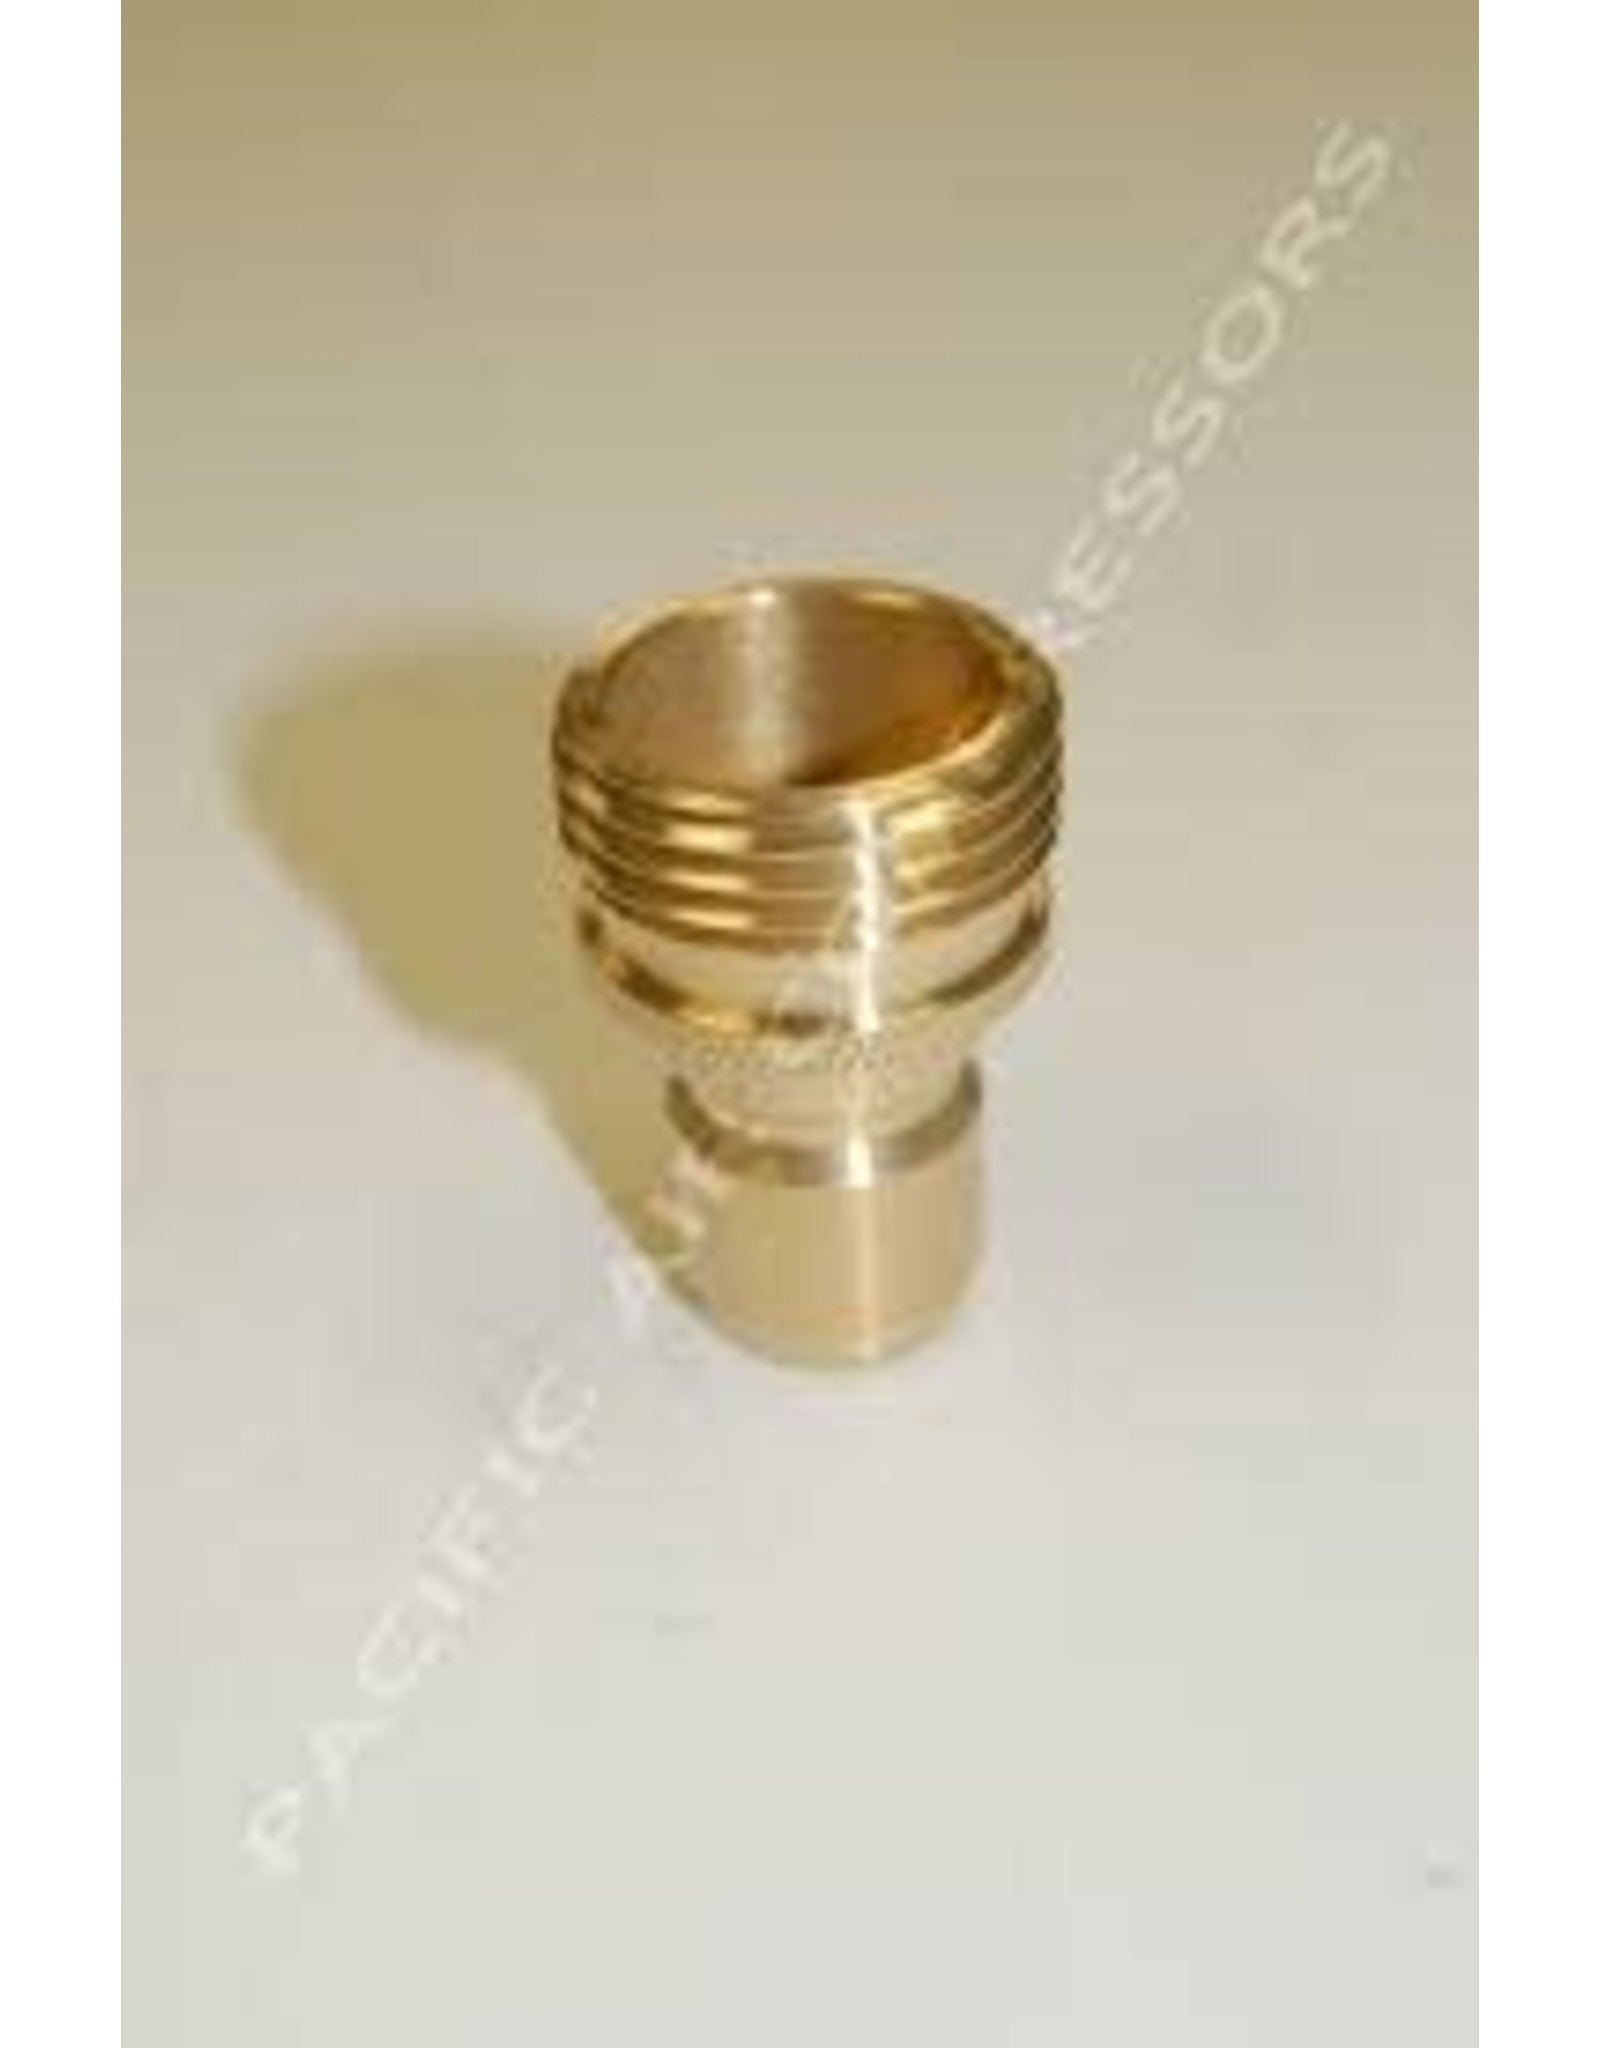 BE 85.300.137/138 Garden Hose Q/Coupler